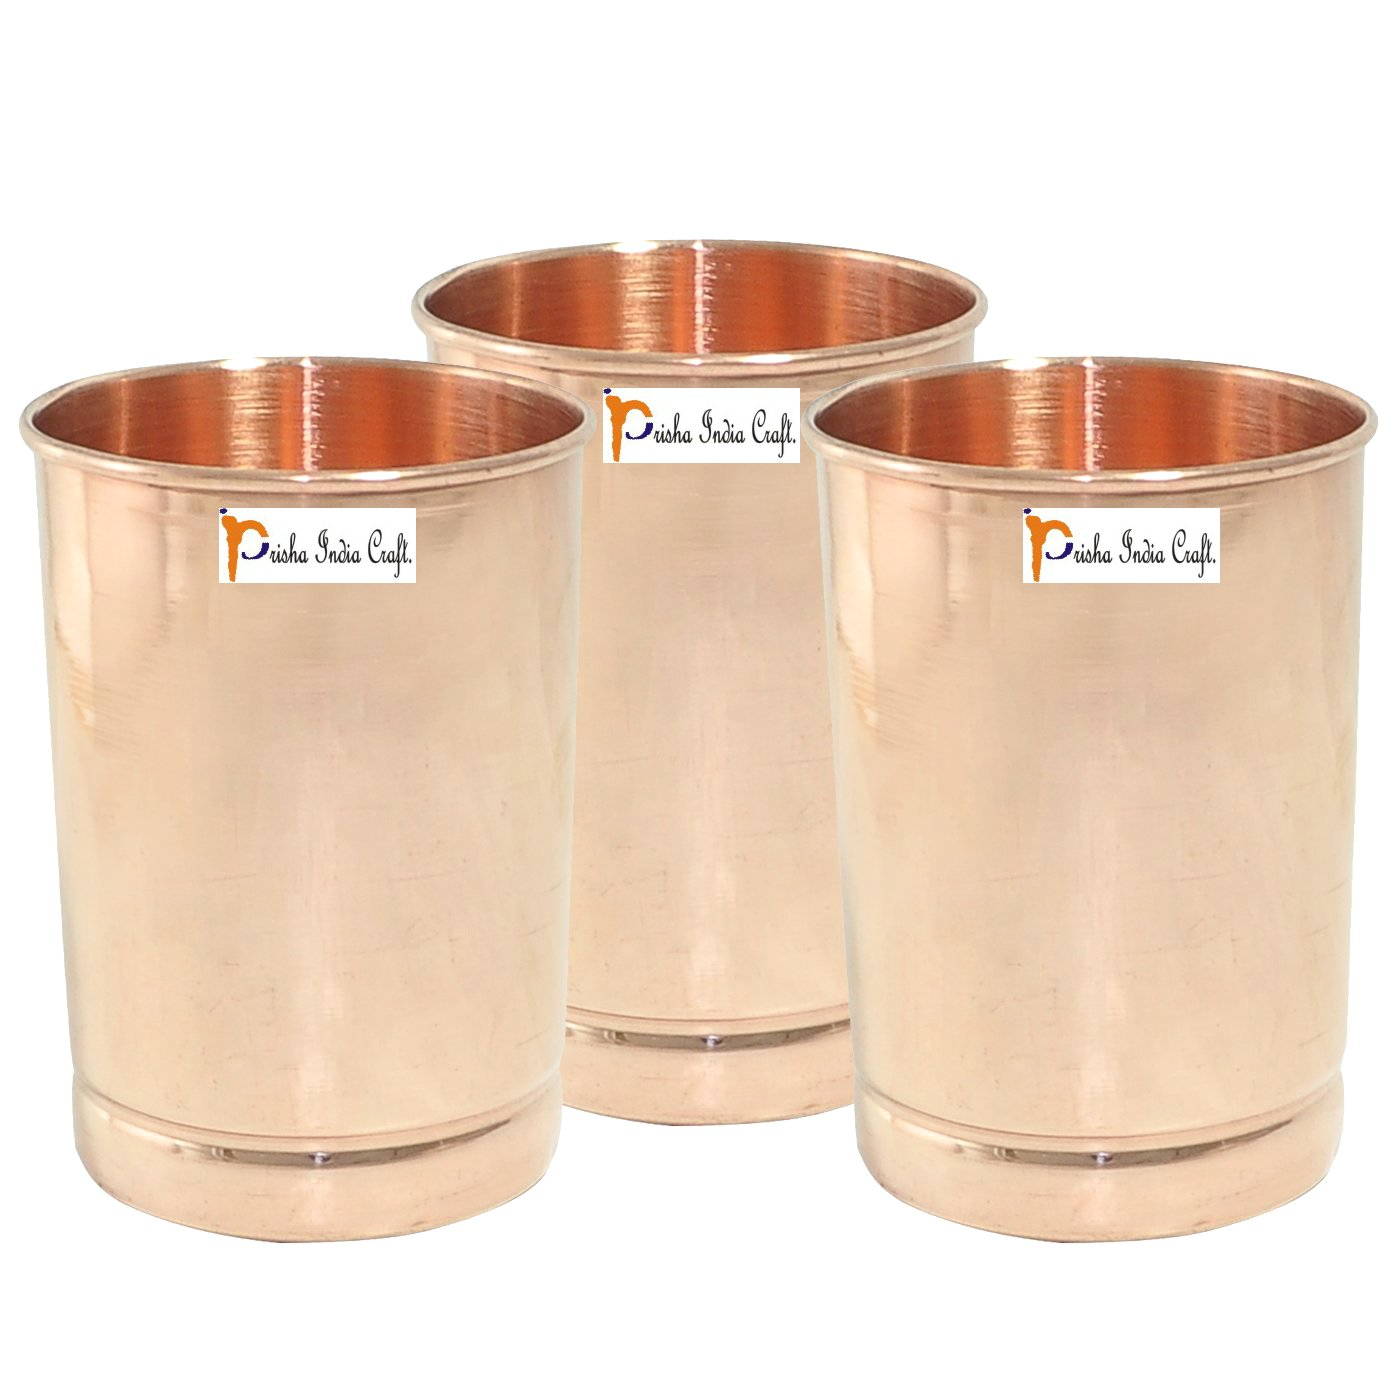 Set of 3 - Prisha India Craft Pure Copper Glass Cup for Water - Handmade Water Glasses - Traveller's Copper Mug for Ayurveda Benefits - CHRISTMAS GIFT ITEM